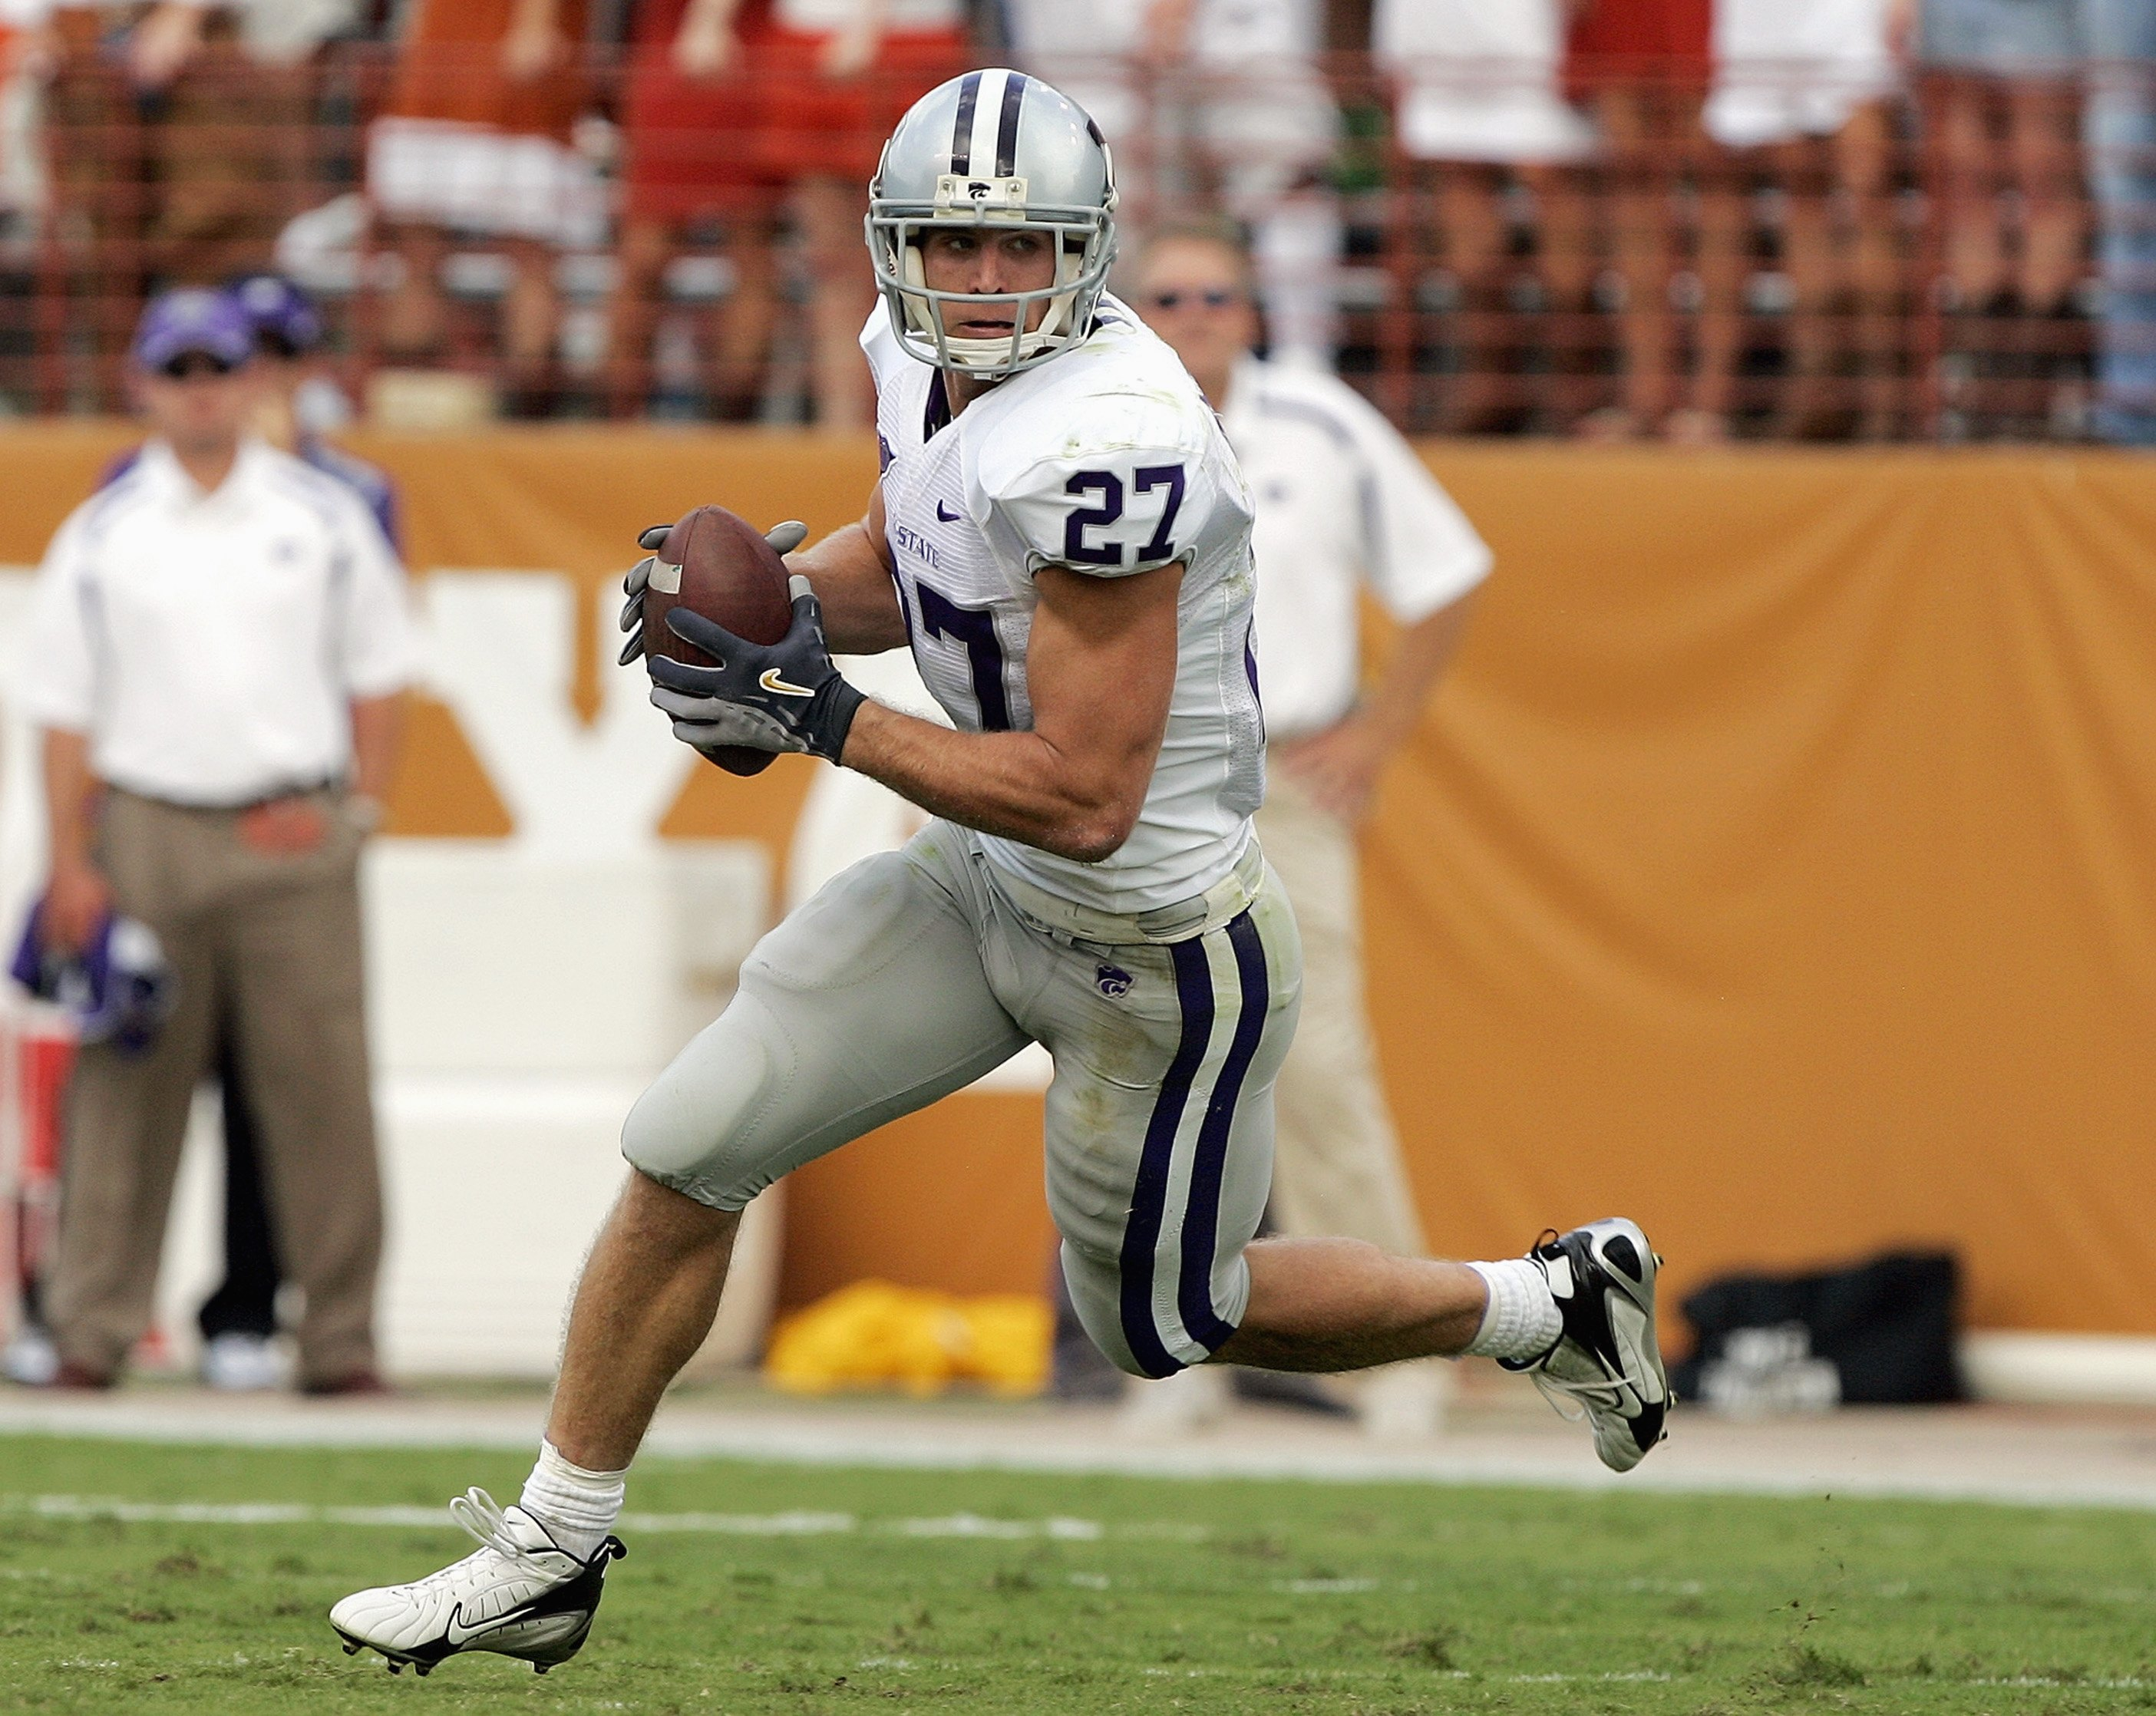 Don't be confused: Tanner Langvardt is no Jordy Nelson. But who else do you think of when No. 27 comes up?